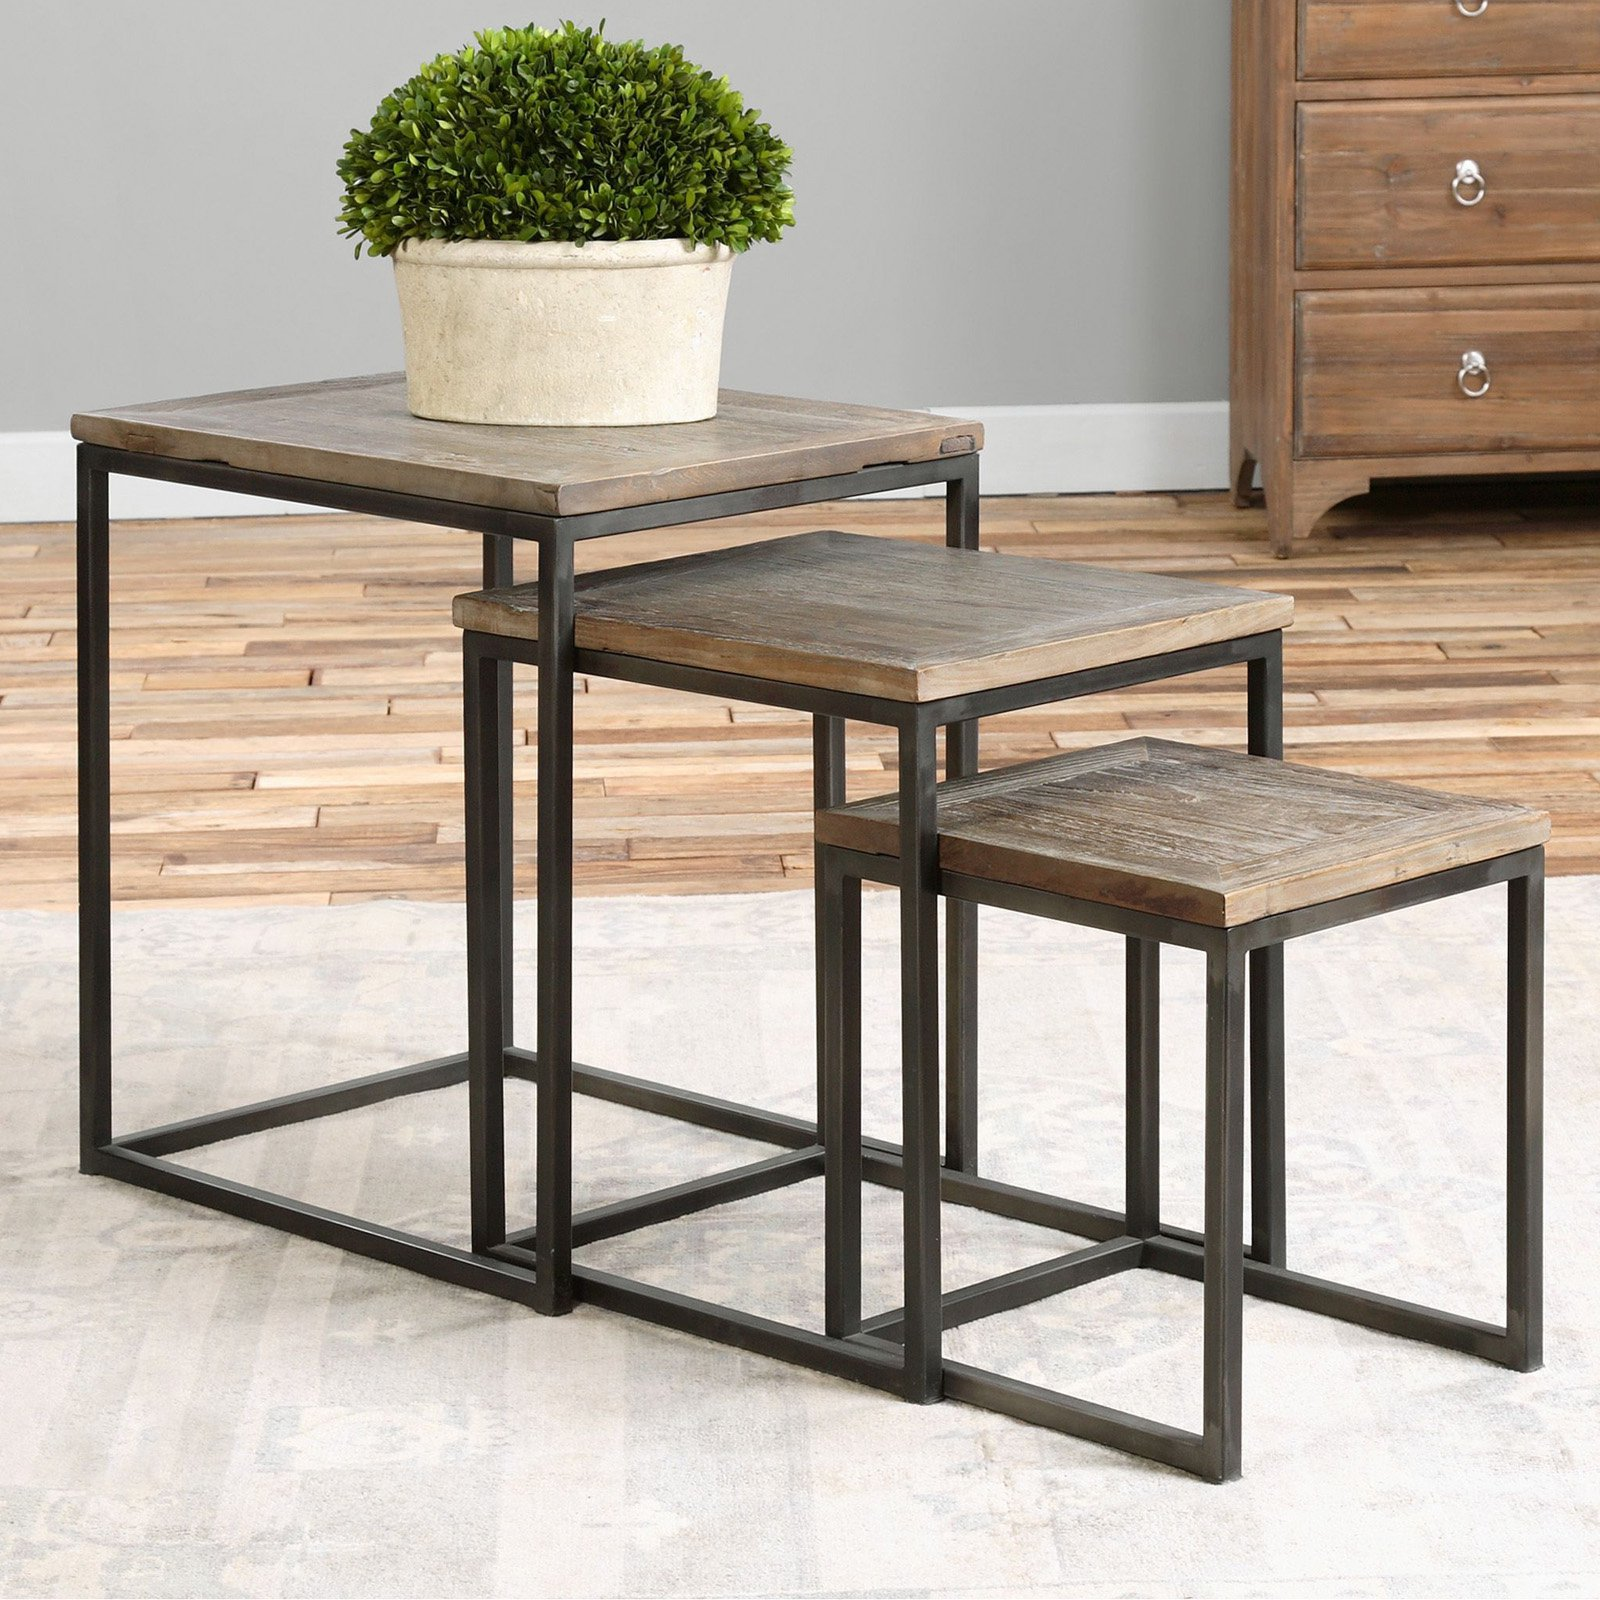 22+ Uttermost nesting coffee tables ideas